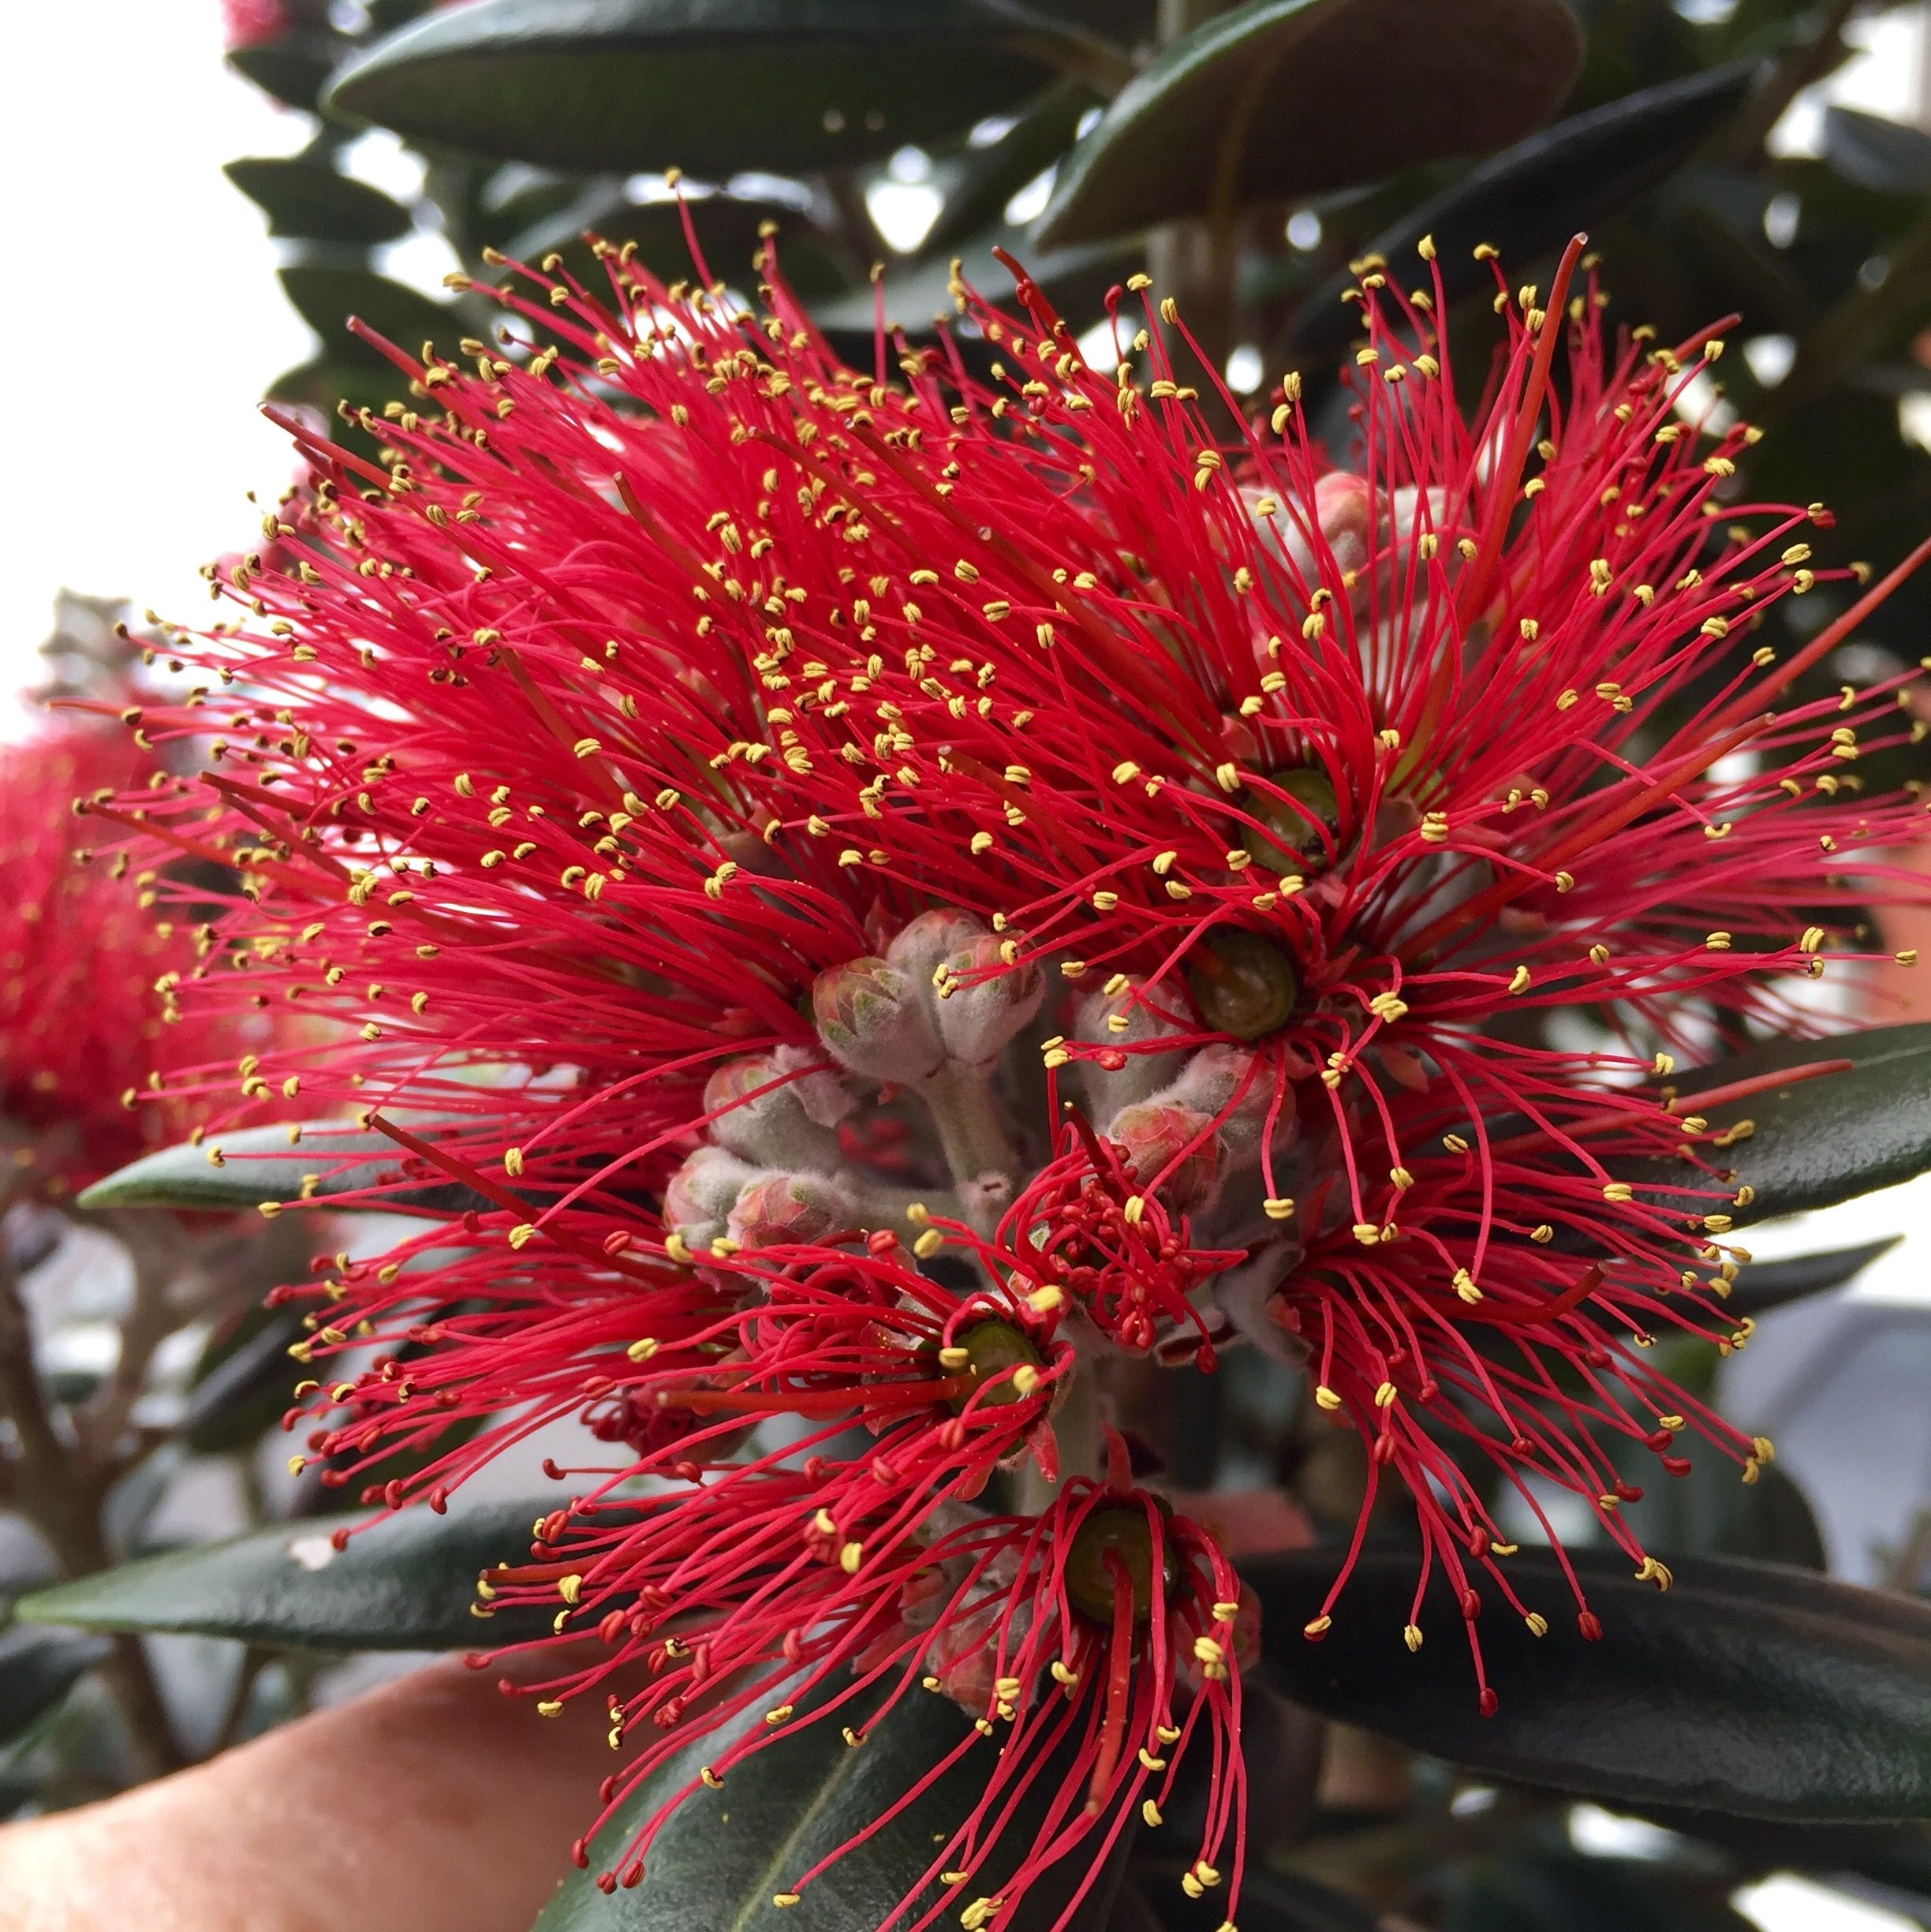 Fibre optic christmas flowers and xmas flowers - Pohutukawa Flower The New Zealand Christmas Tree